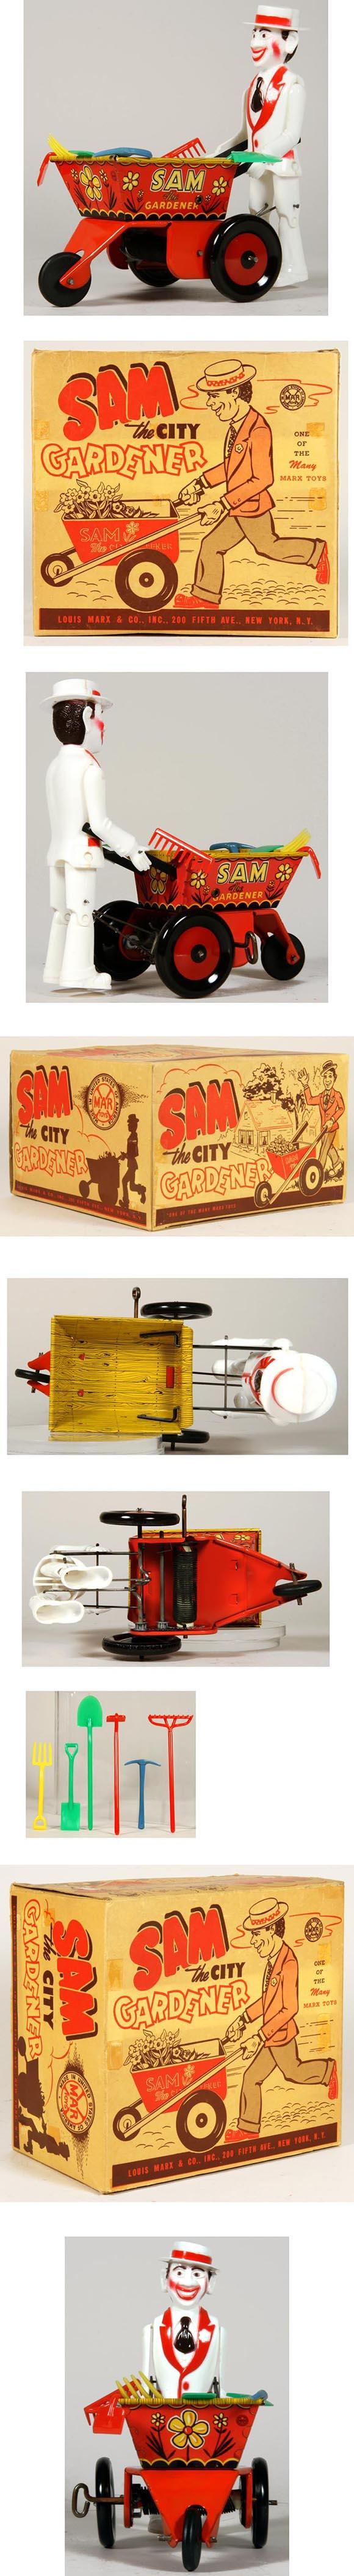 c.1948 Marx Sam The City Gardener In Original Box